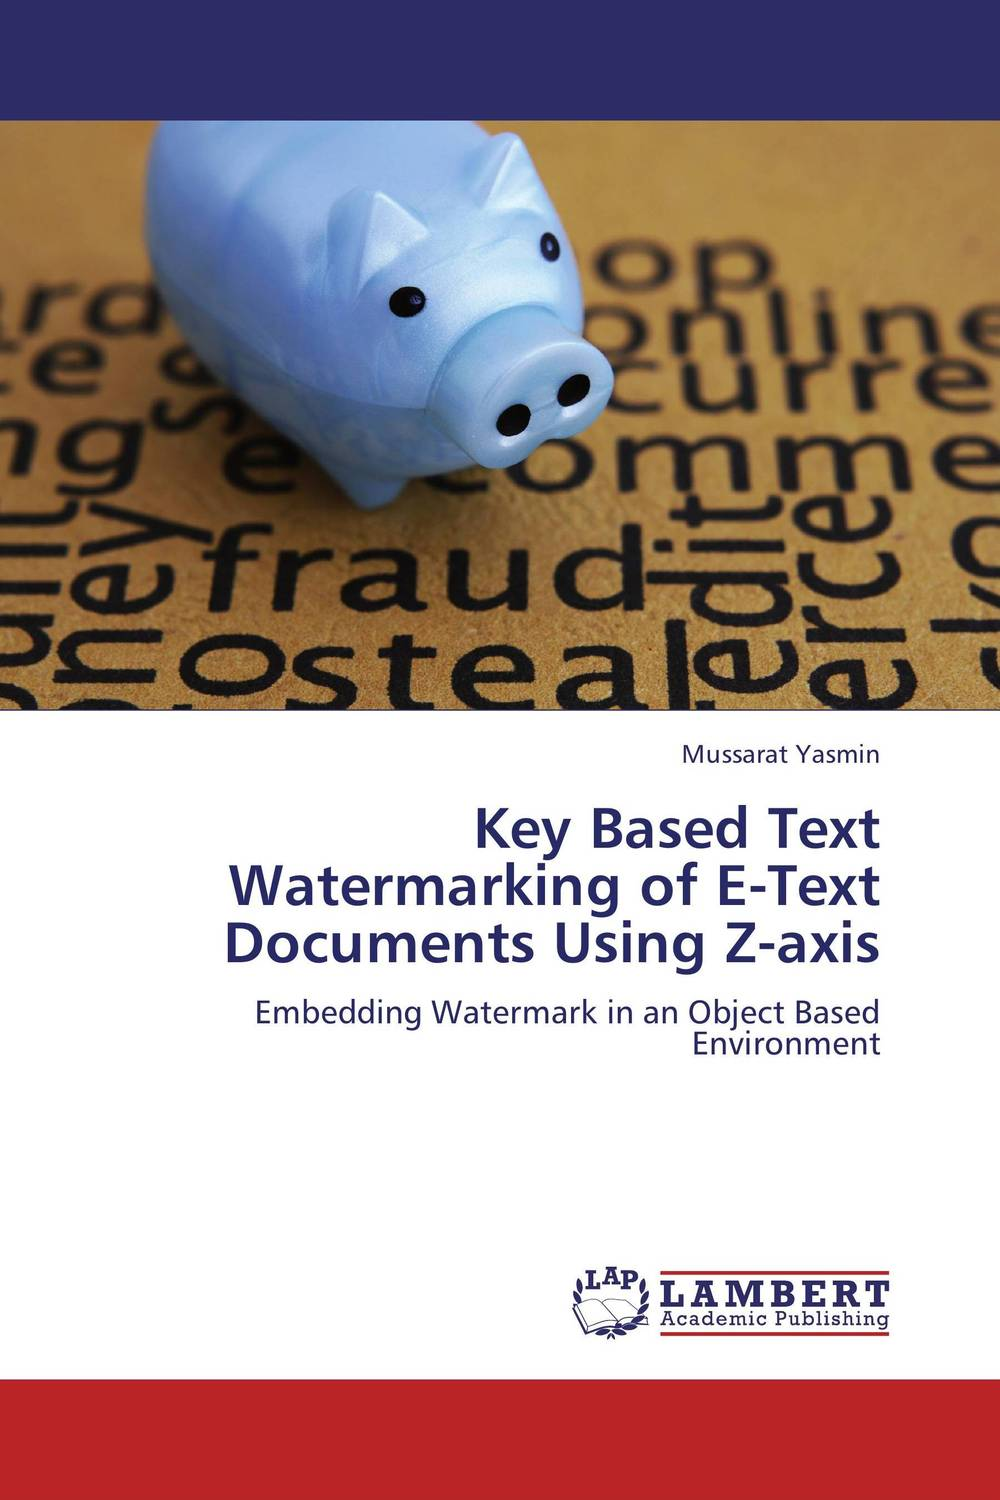 Key Based Text Watermarking of E-Text Documents Using Z-axis packet watermarking using ip options field